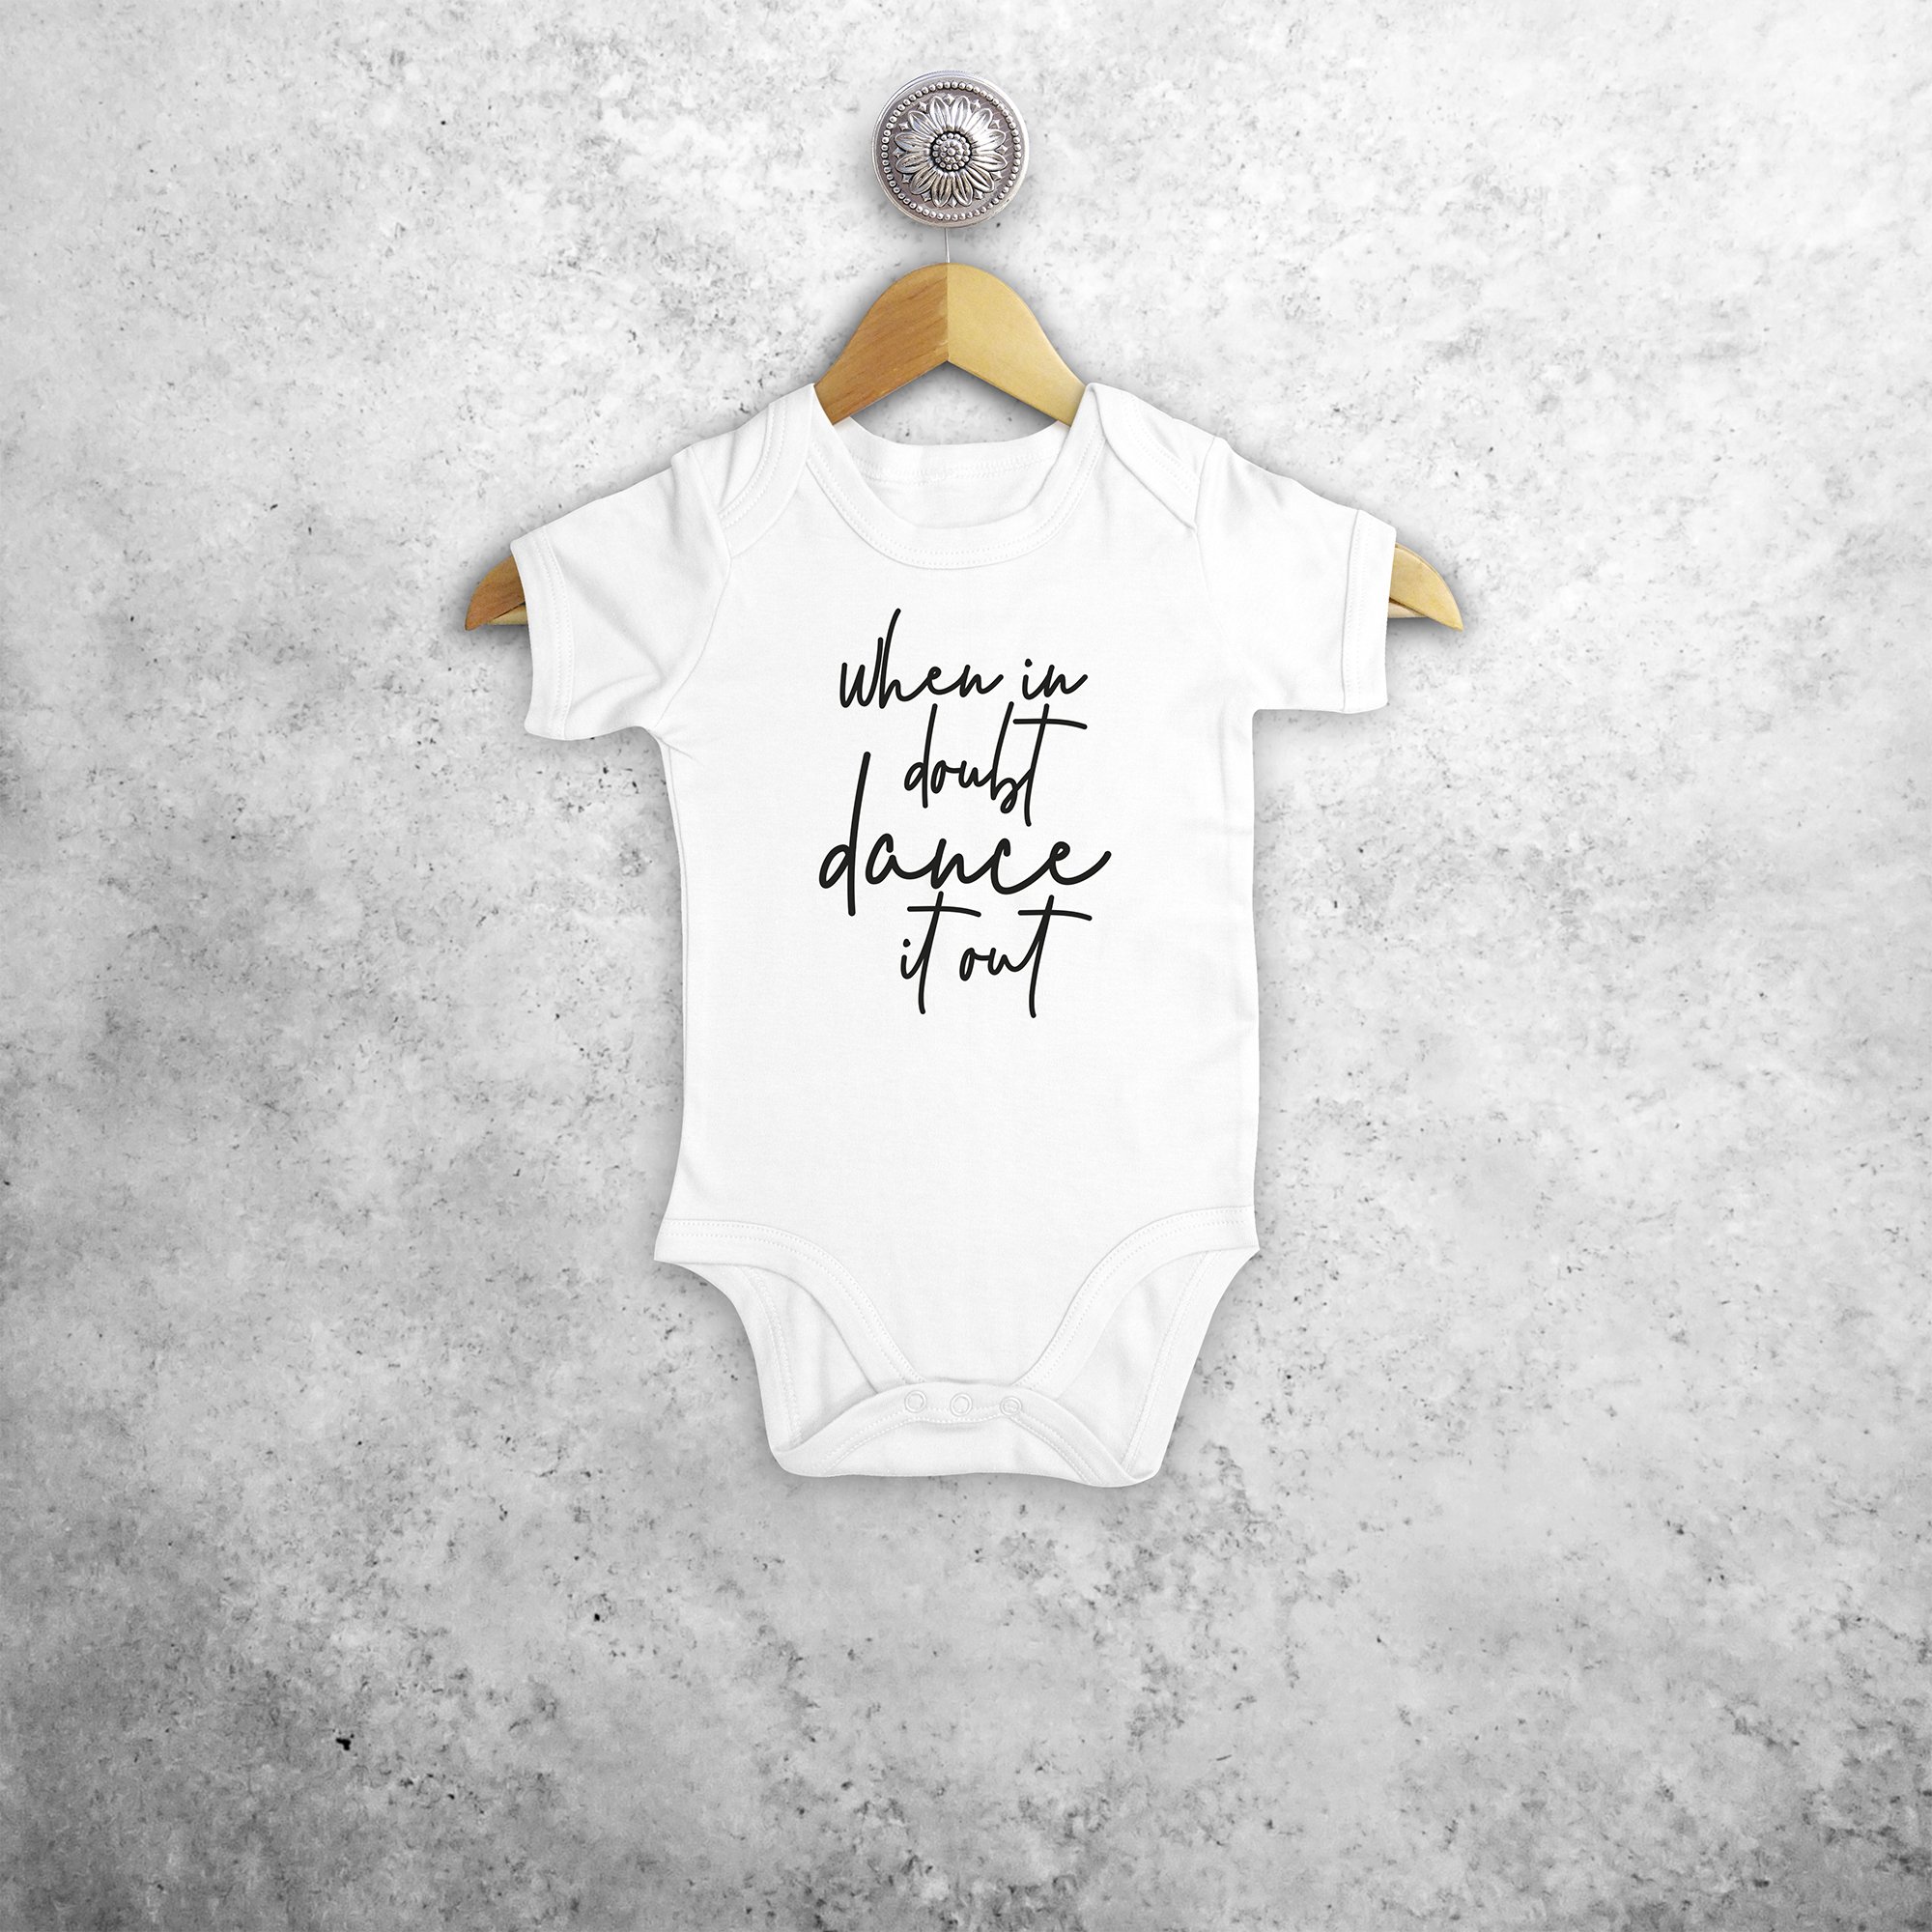 'When in doubt dance it out' baby shortsleeve bodysuit